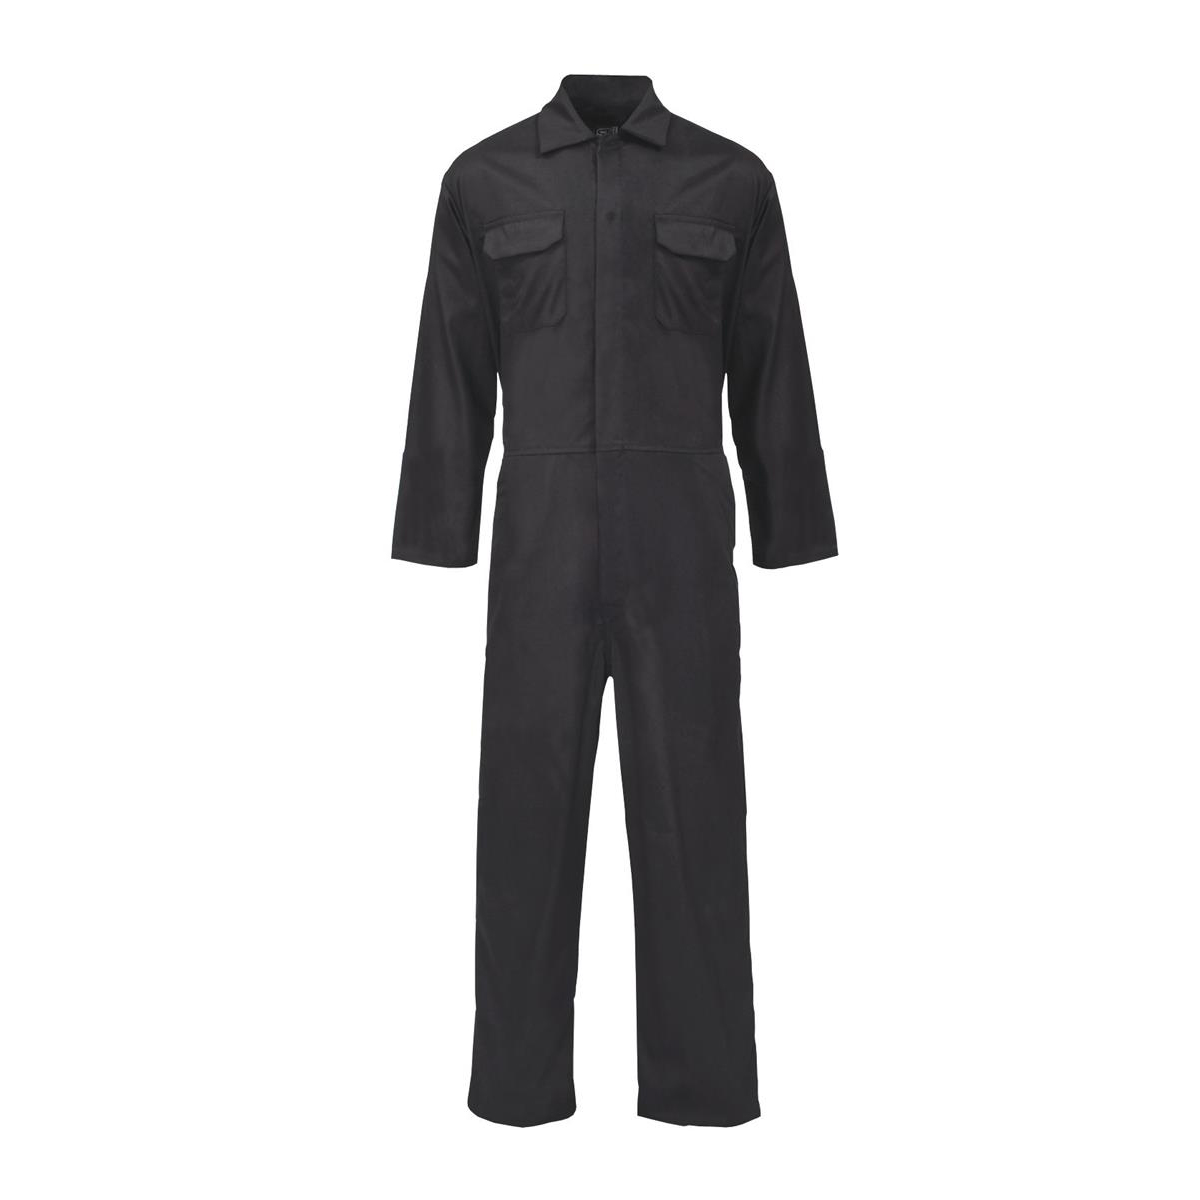 Coverall Basic with Popper Front Opening Polycotton Medium Black Ref RPCBSBL40 *Approx 3 Day Leadtime*